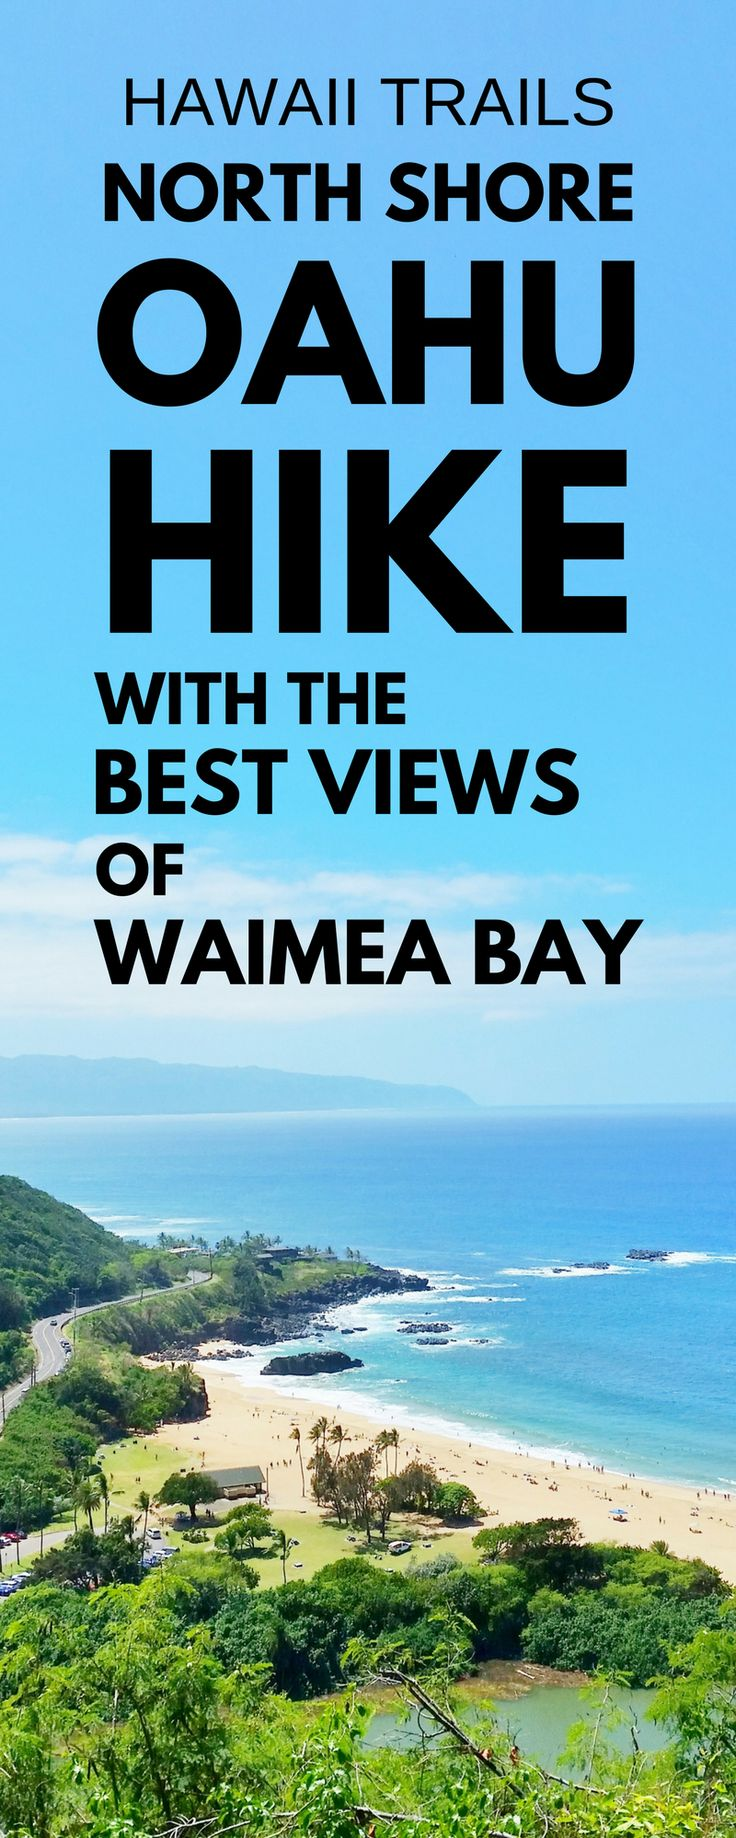 Short easy hikes in Hawaii: What's a North Shore Oahu hike that's easy to add to Hawaii vacation itinerary? Hawaiian temple heiau trail near Waimea Bay and best spots for snorkeling on North Shore and a pillbox hike. For US hiking trails in Hawaii, tons of hikes to go to from Waikiki, Honolulu. Beaches, shopping, food nearby. Outdoor travel destinations, activities, ideas for bucket list, budget adventures! Think what to wear, what to pack for hiking to add to Hawaii packing list.. #hawaii…